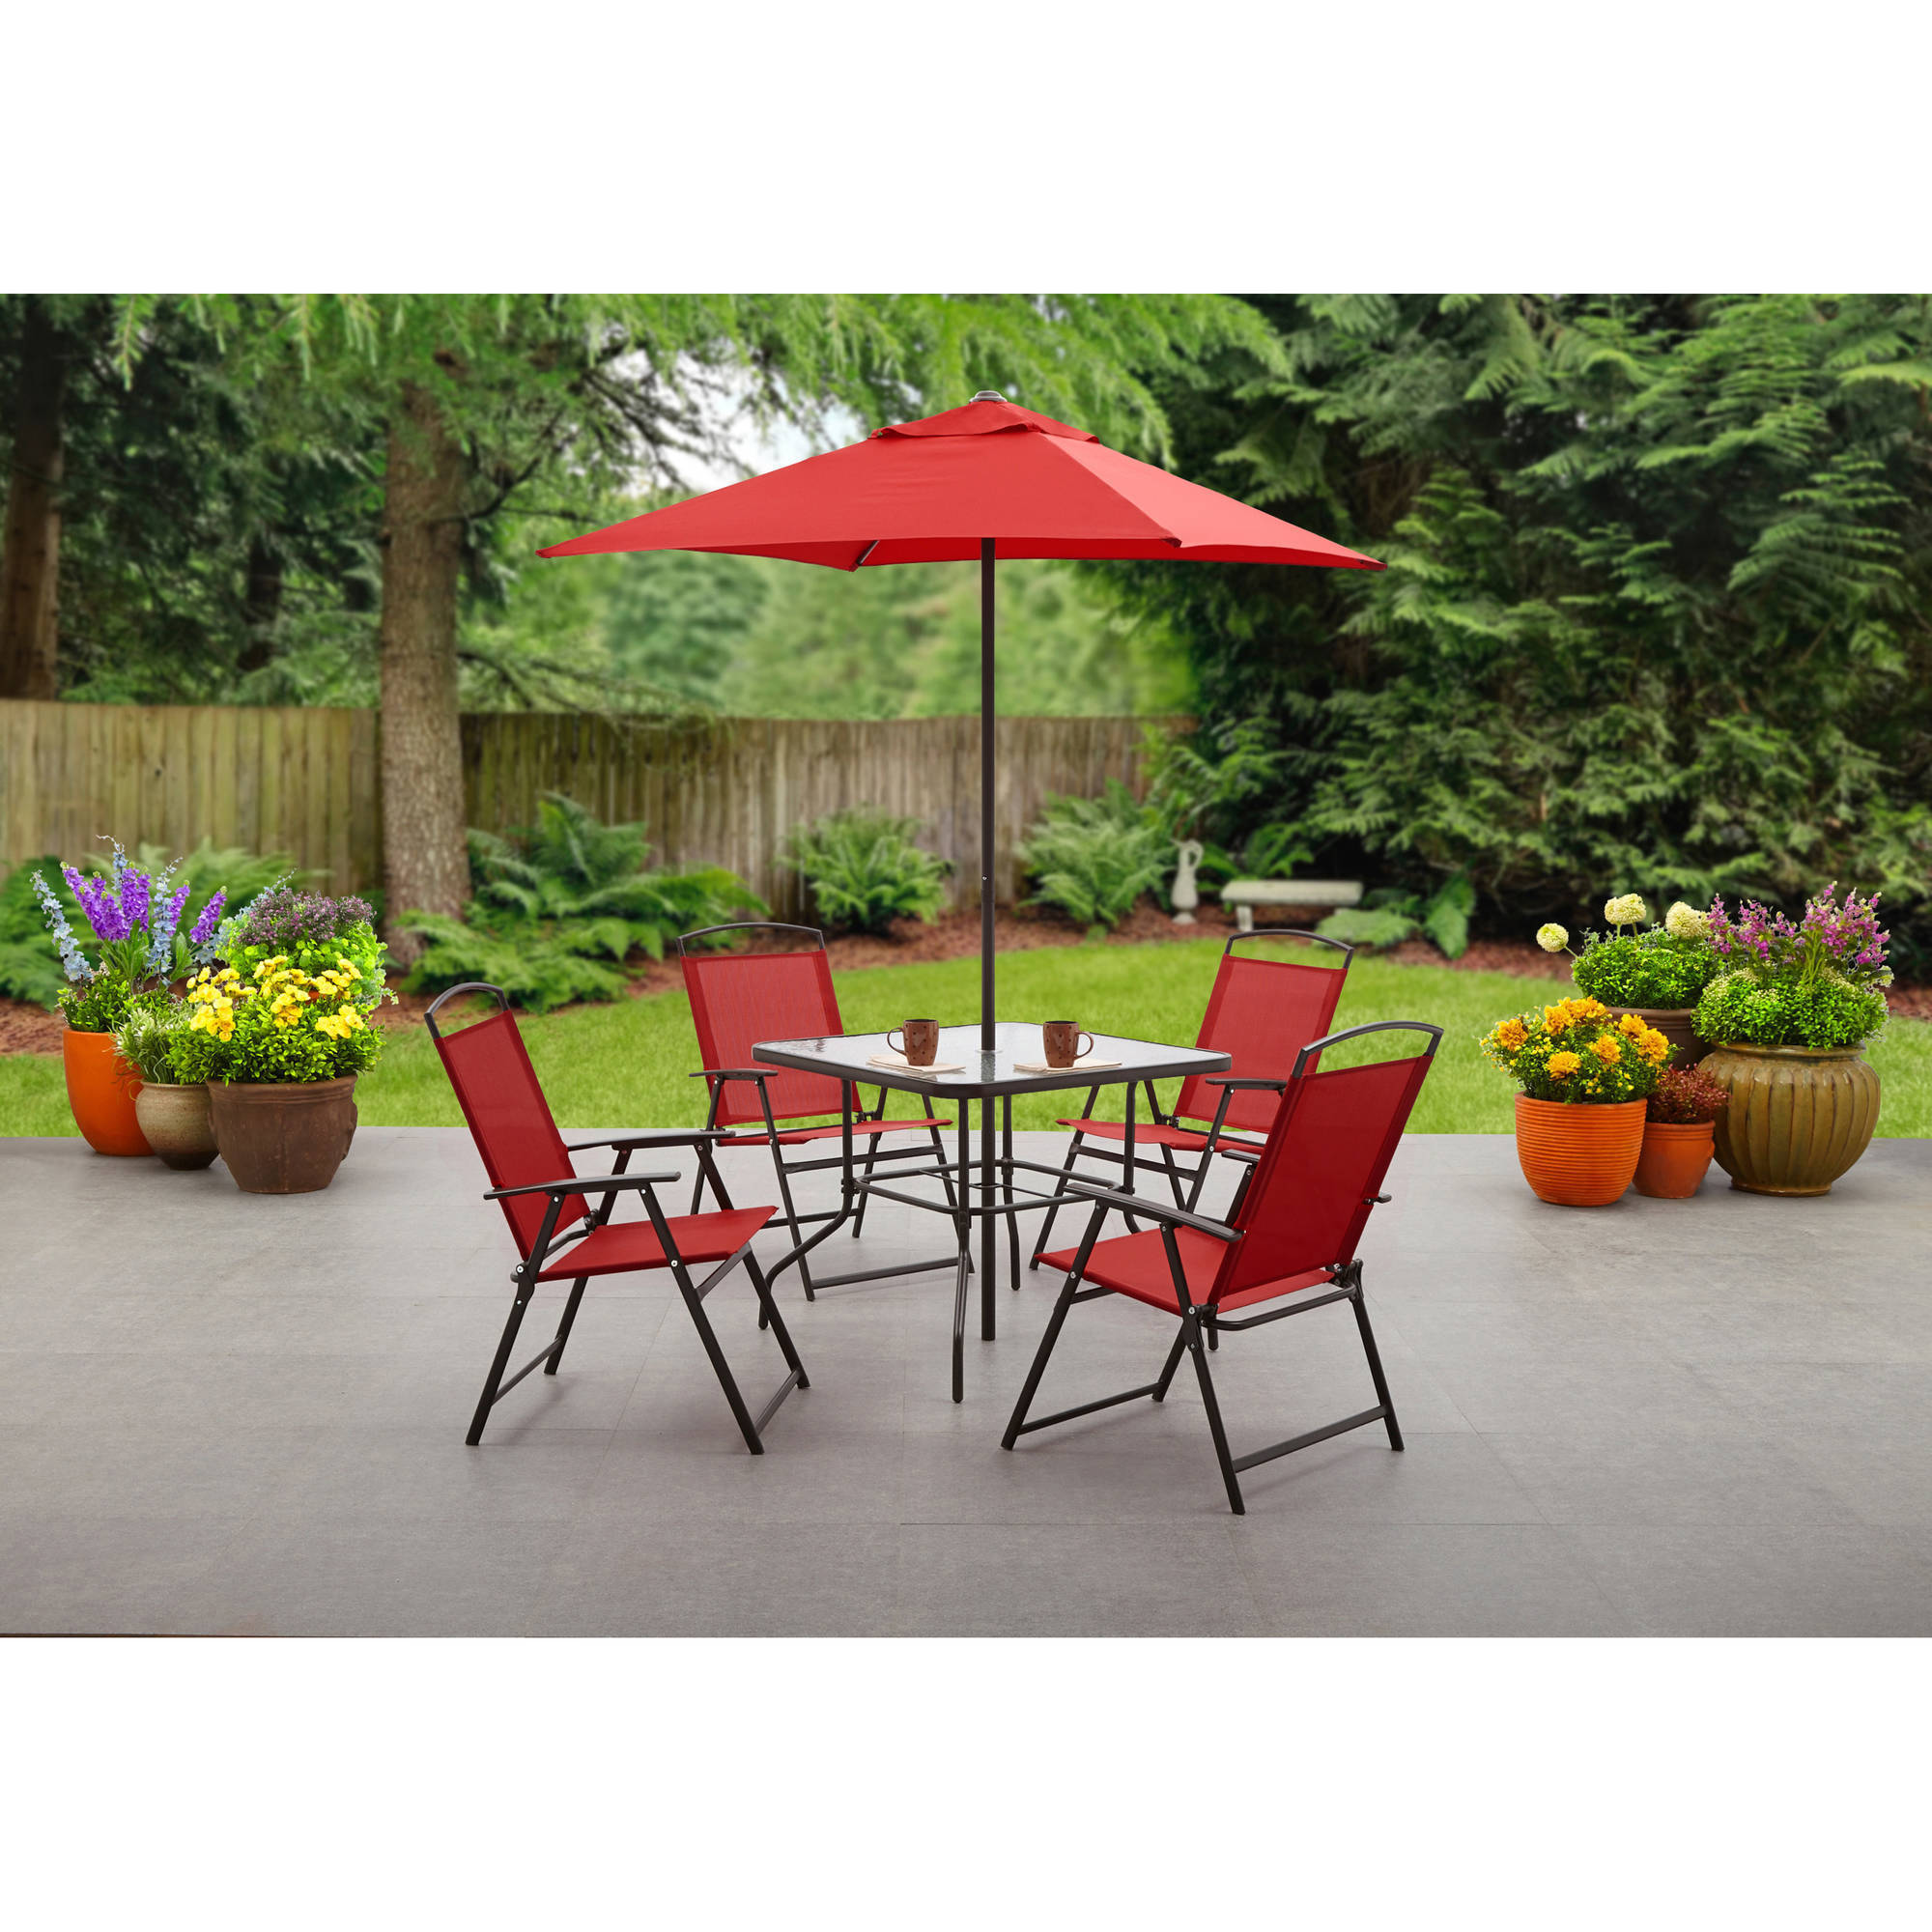 Mainstays Albany Lane Piece Folding Dining Set Multiple Colors